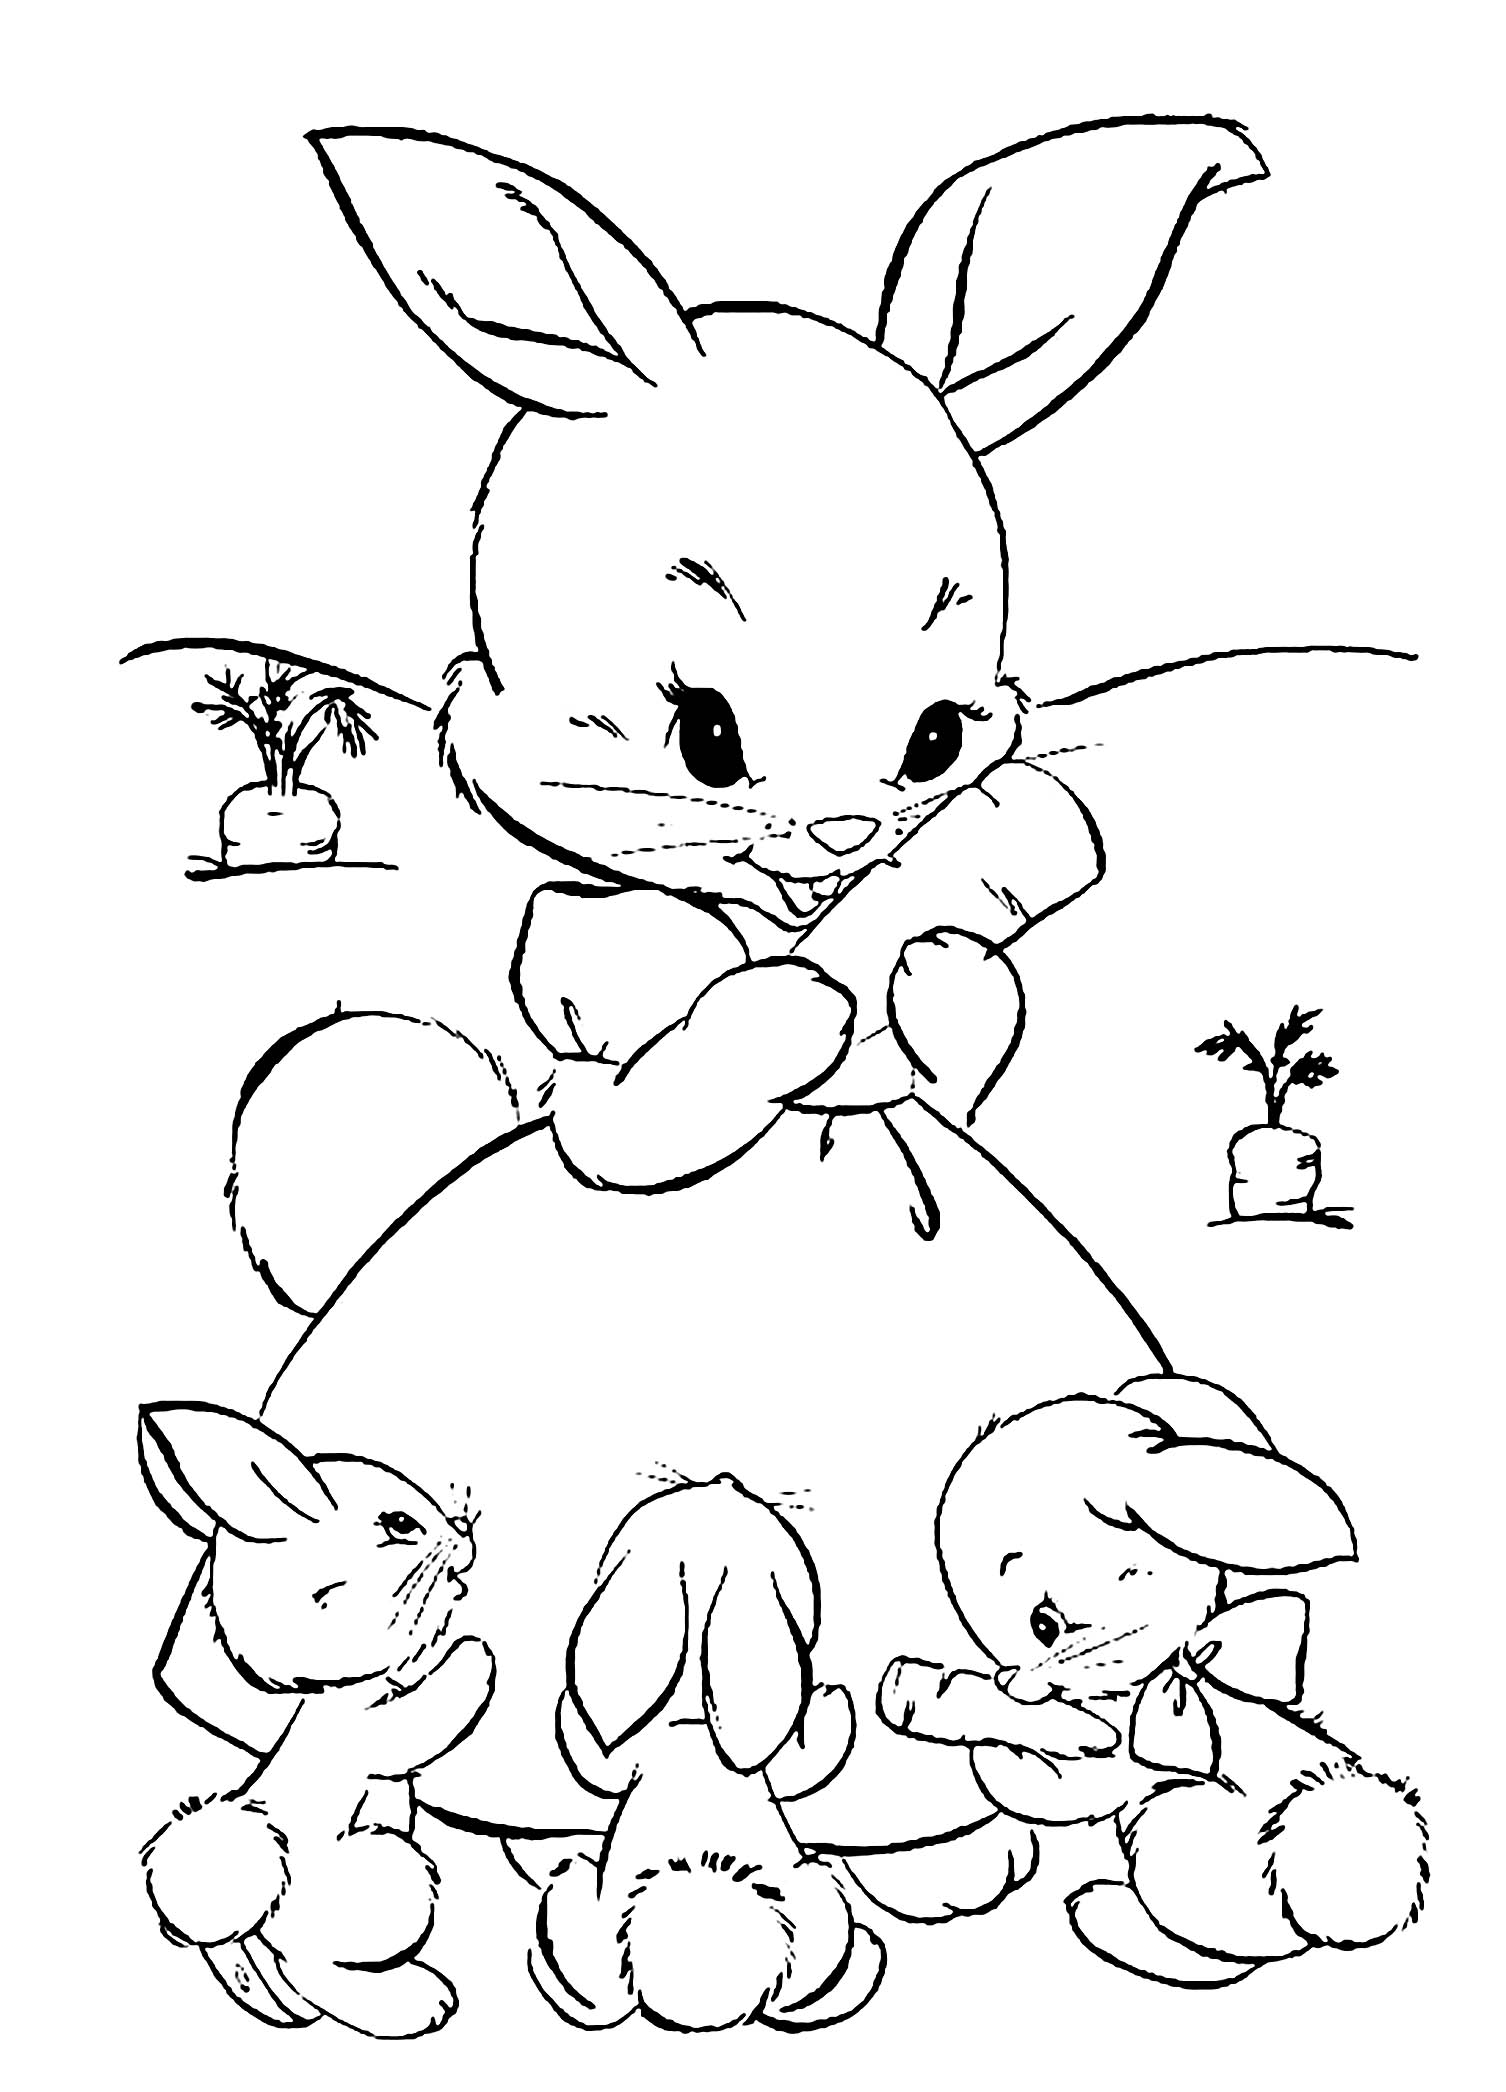 bunny coloring picture rabbit to download for free rabbit kids coloring pages coloring bunny picture